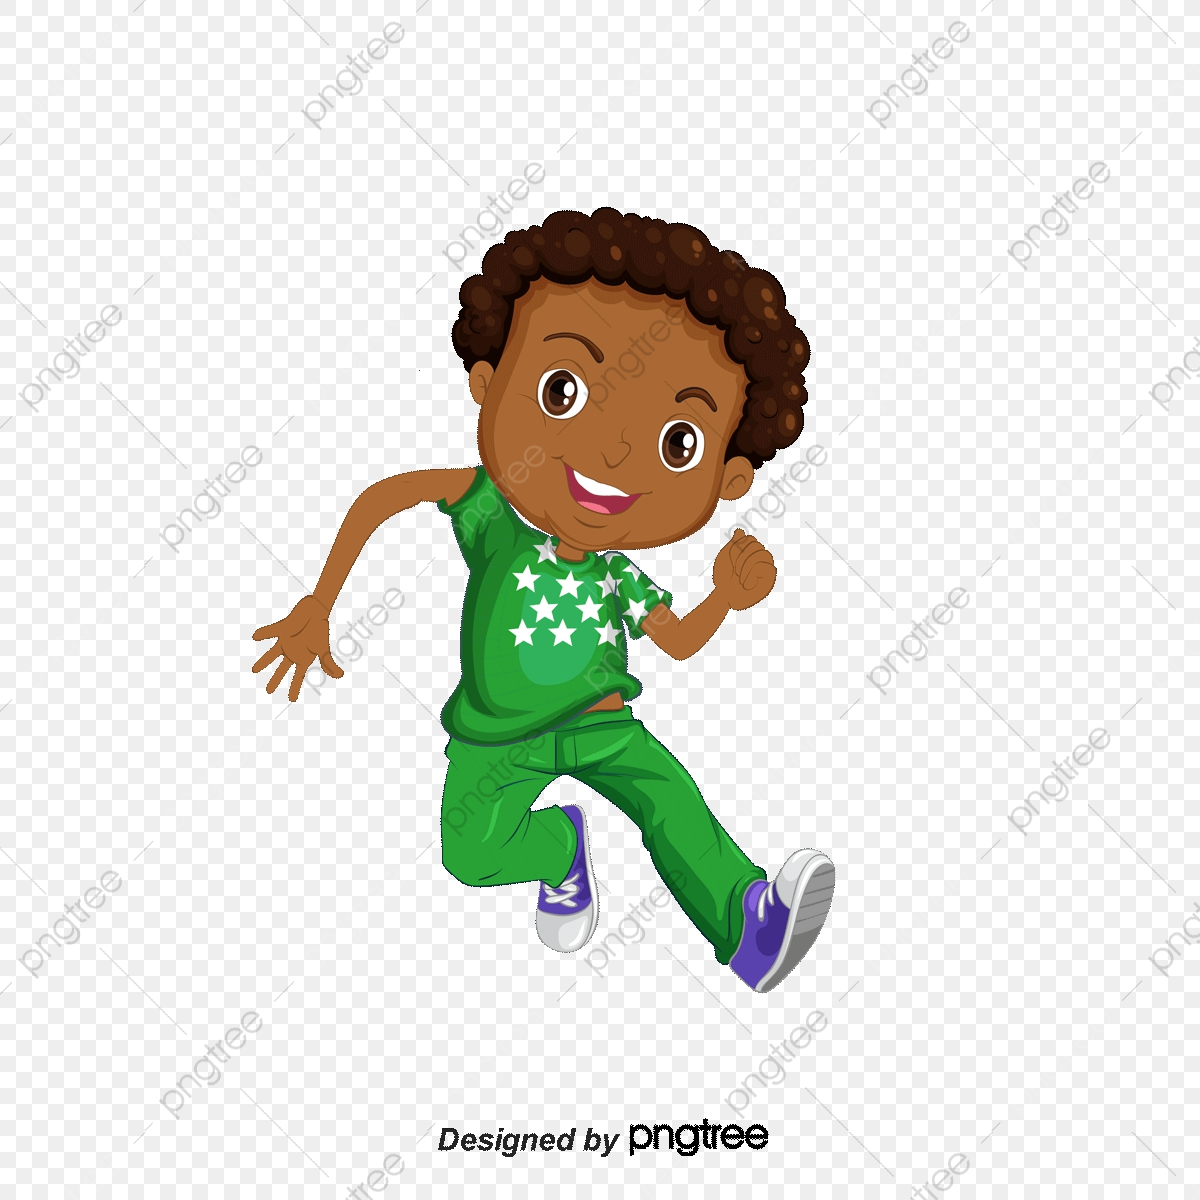 Cartoon Student PNG, Clipart, Area, Art, Bulletin Board, Cartoon, Character  Education Free PNG Download